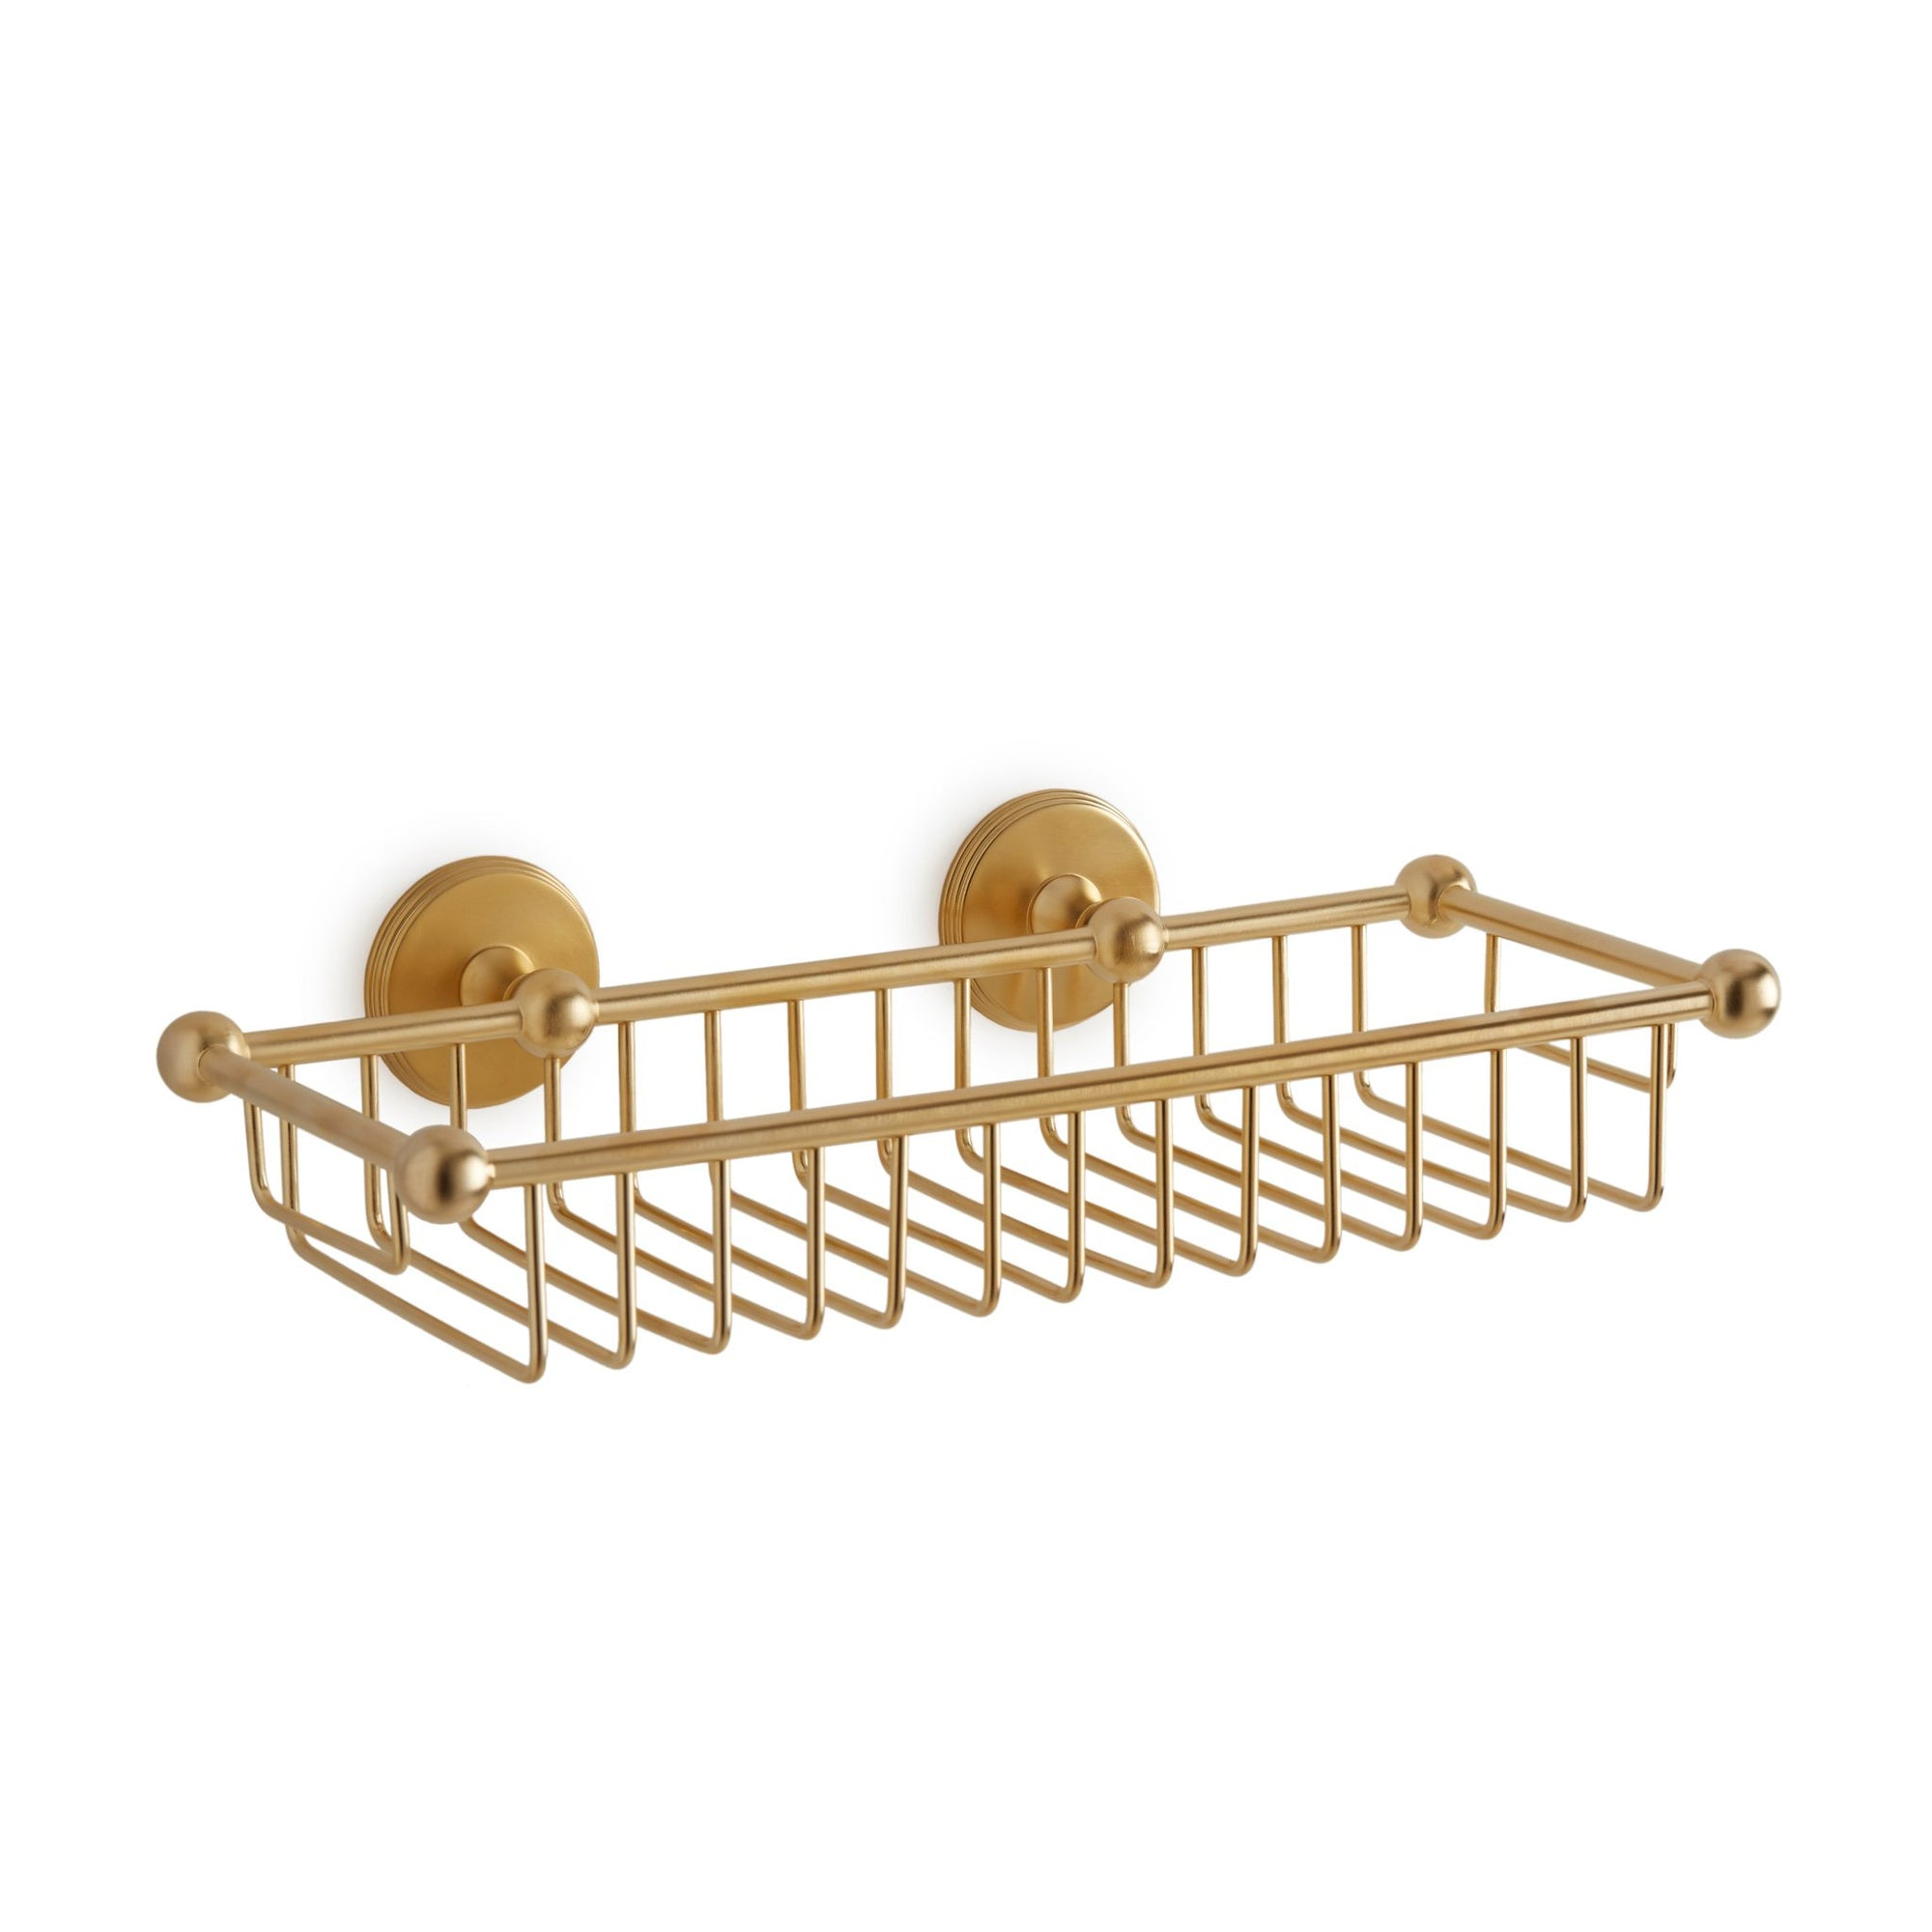 3801-GP Sherle Wagner International Shower Basket Rectangular in Gold Plate metal finish